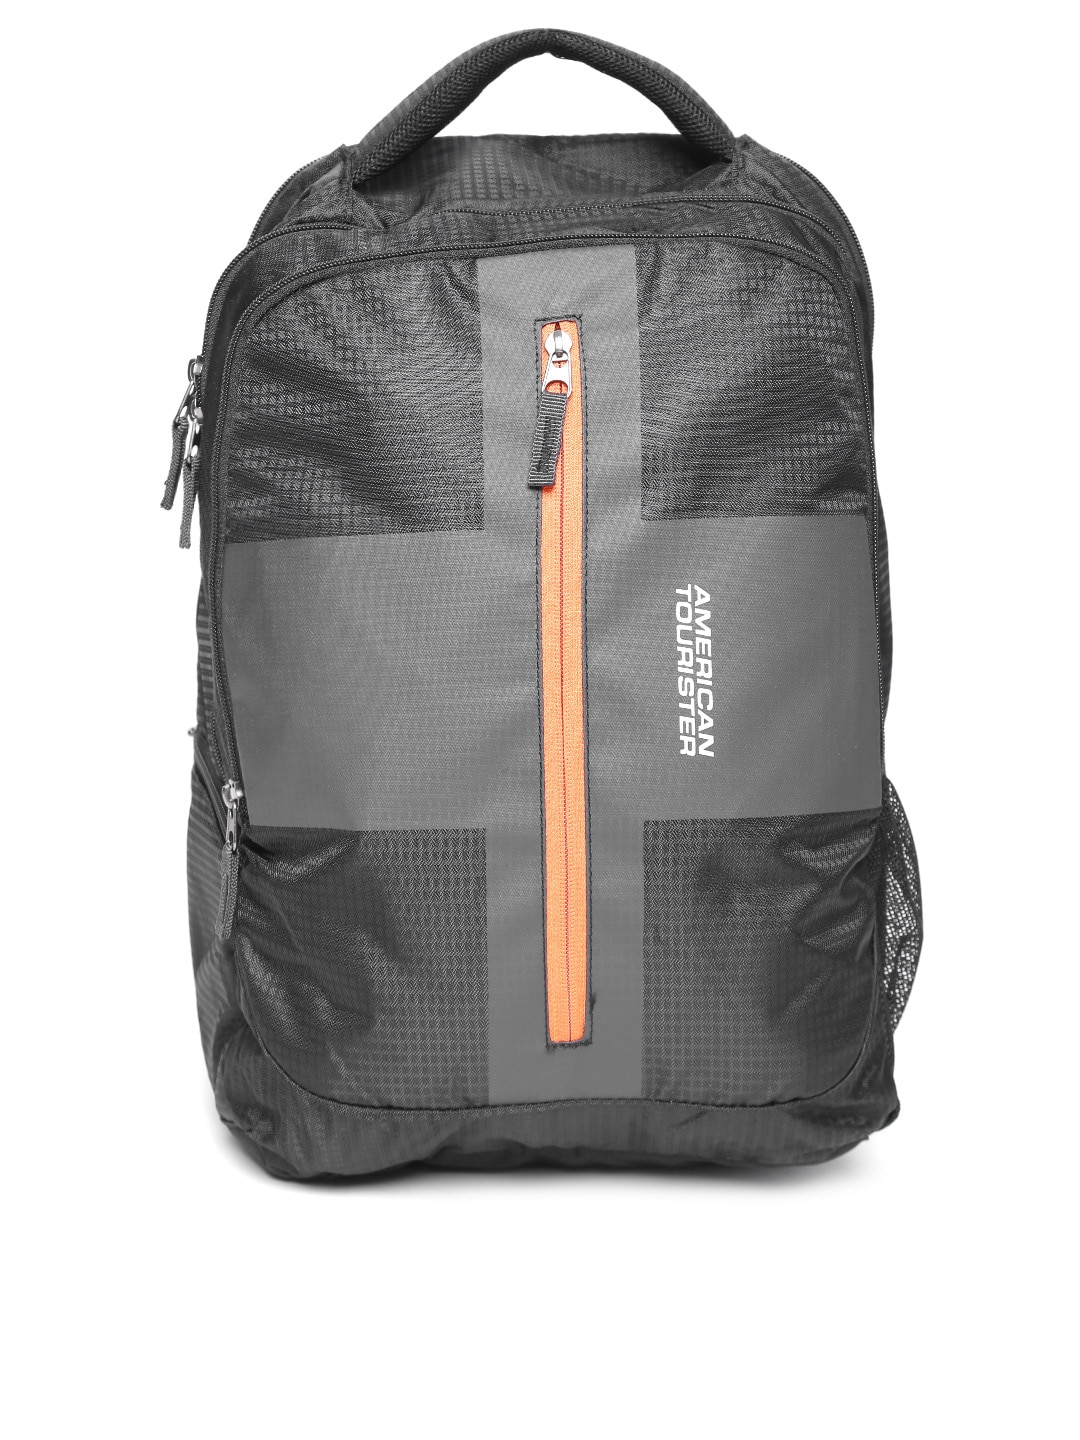 Search Bluetech Waterproff Bag